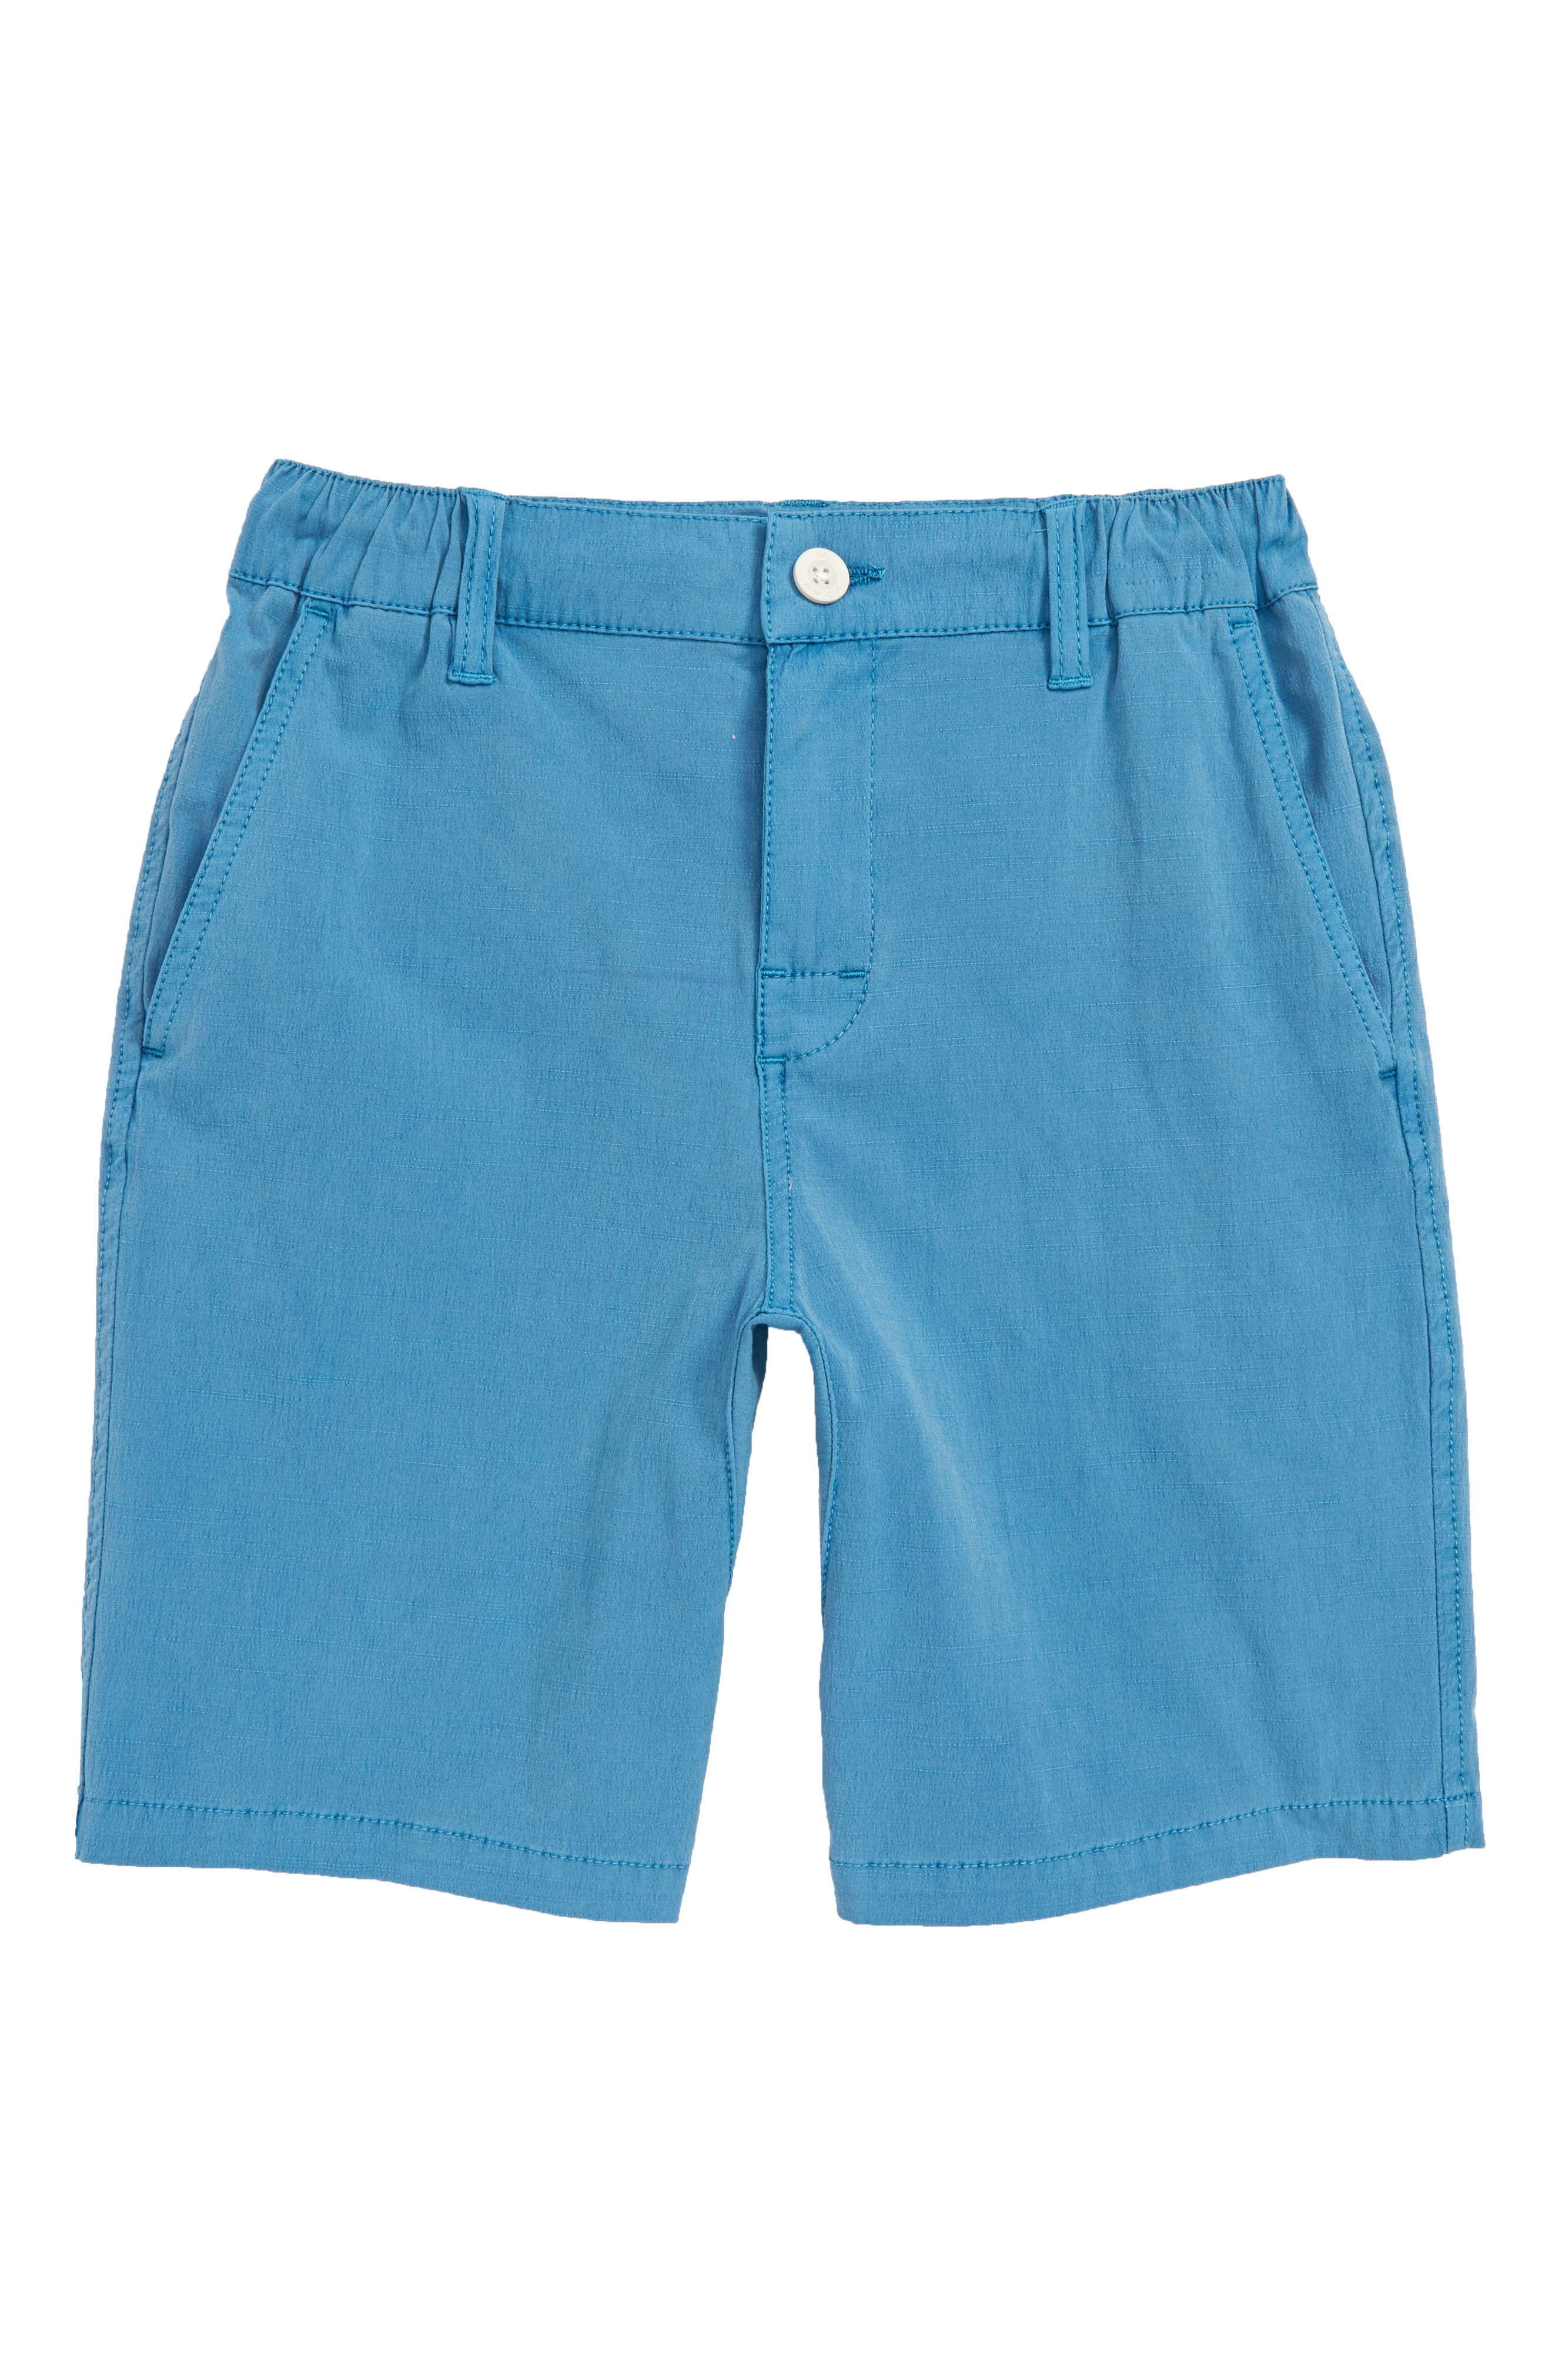 All Time Coastal SOL Hybrid Shorts,                         Main,                         color, 460